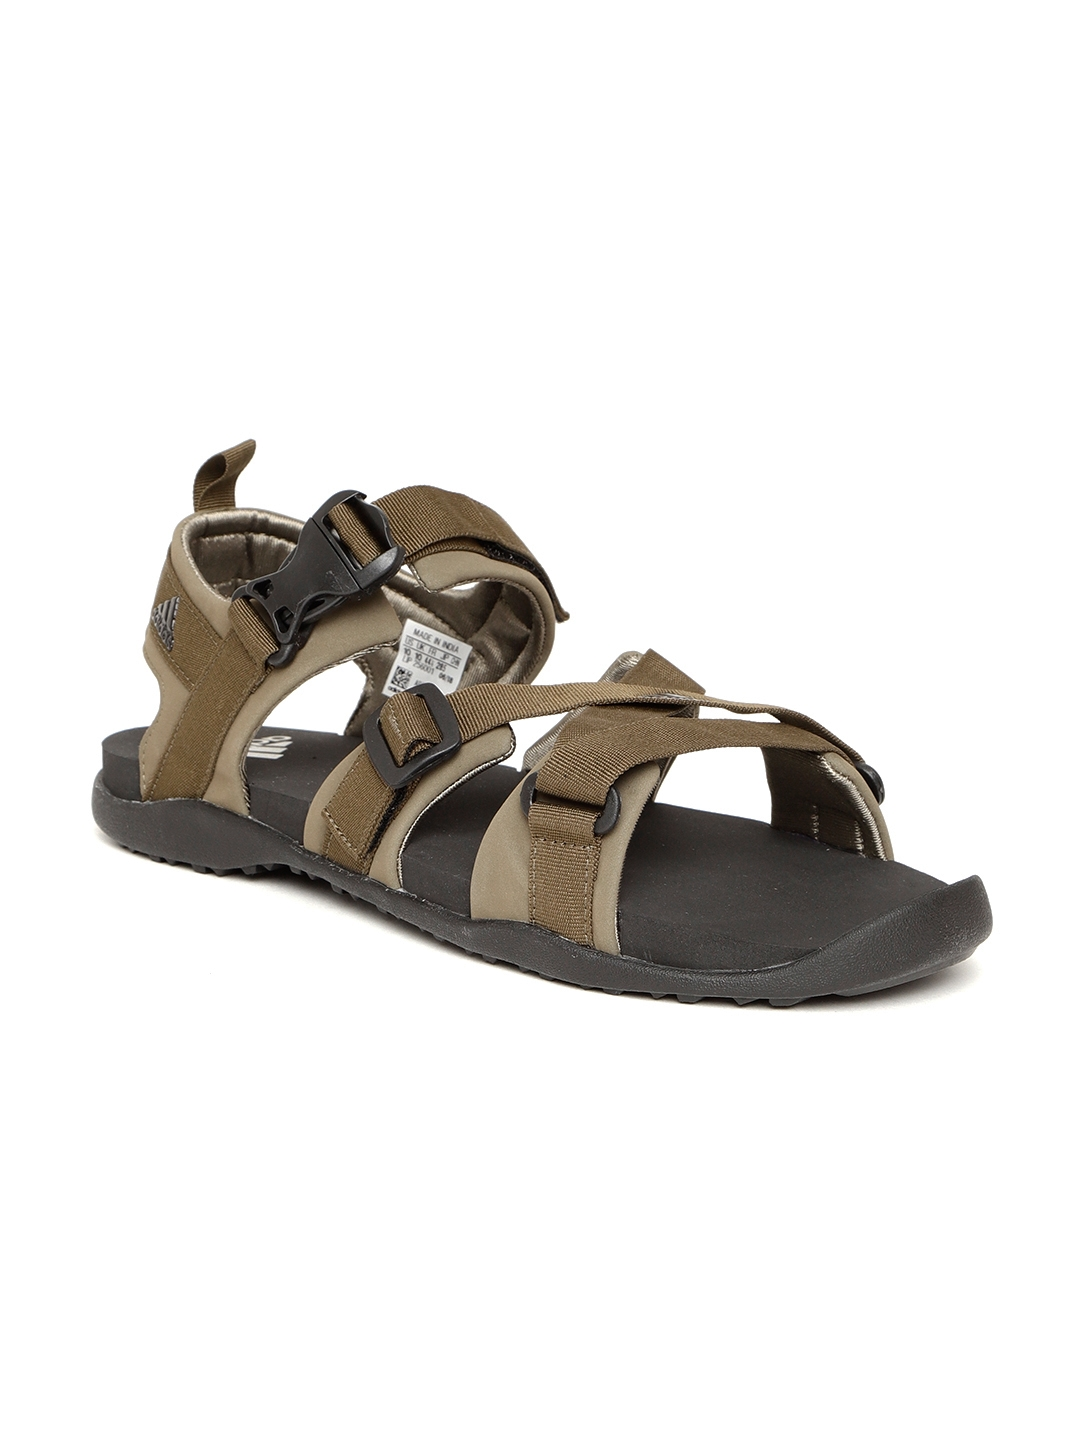 68fa4e078 Buy ADIDAS Men Olive Brown Gladi Sports Sandals - Sports Sandals for ...